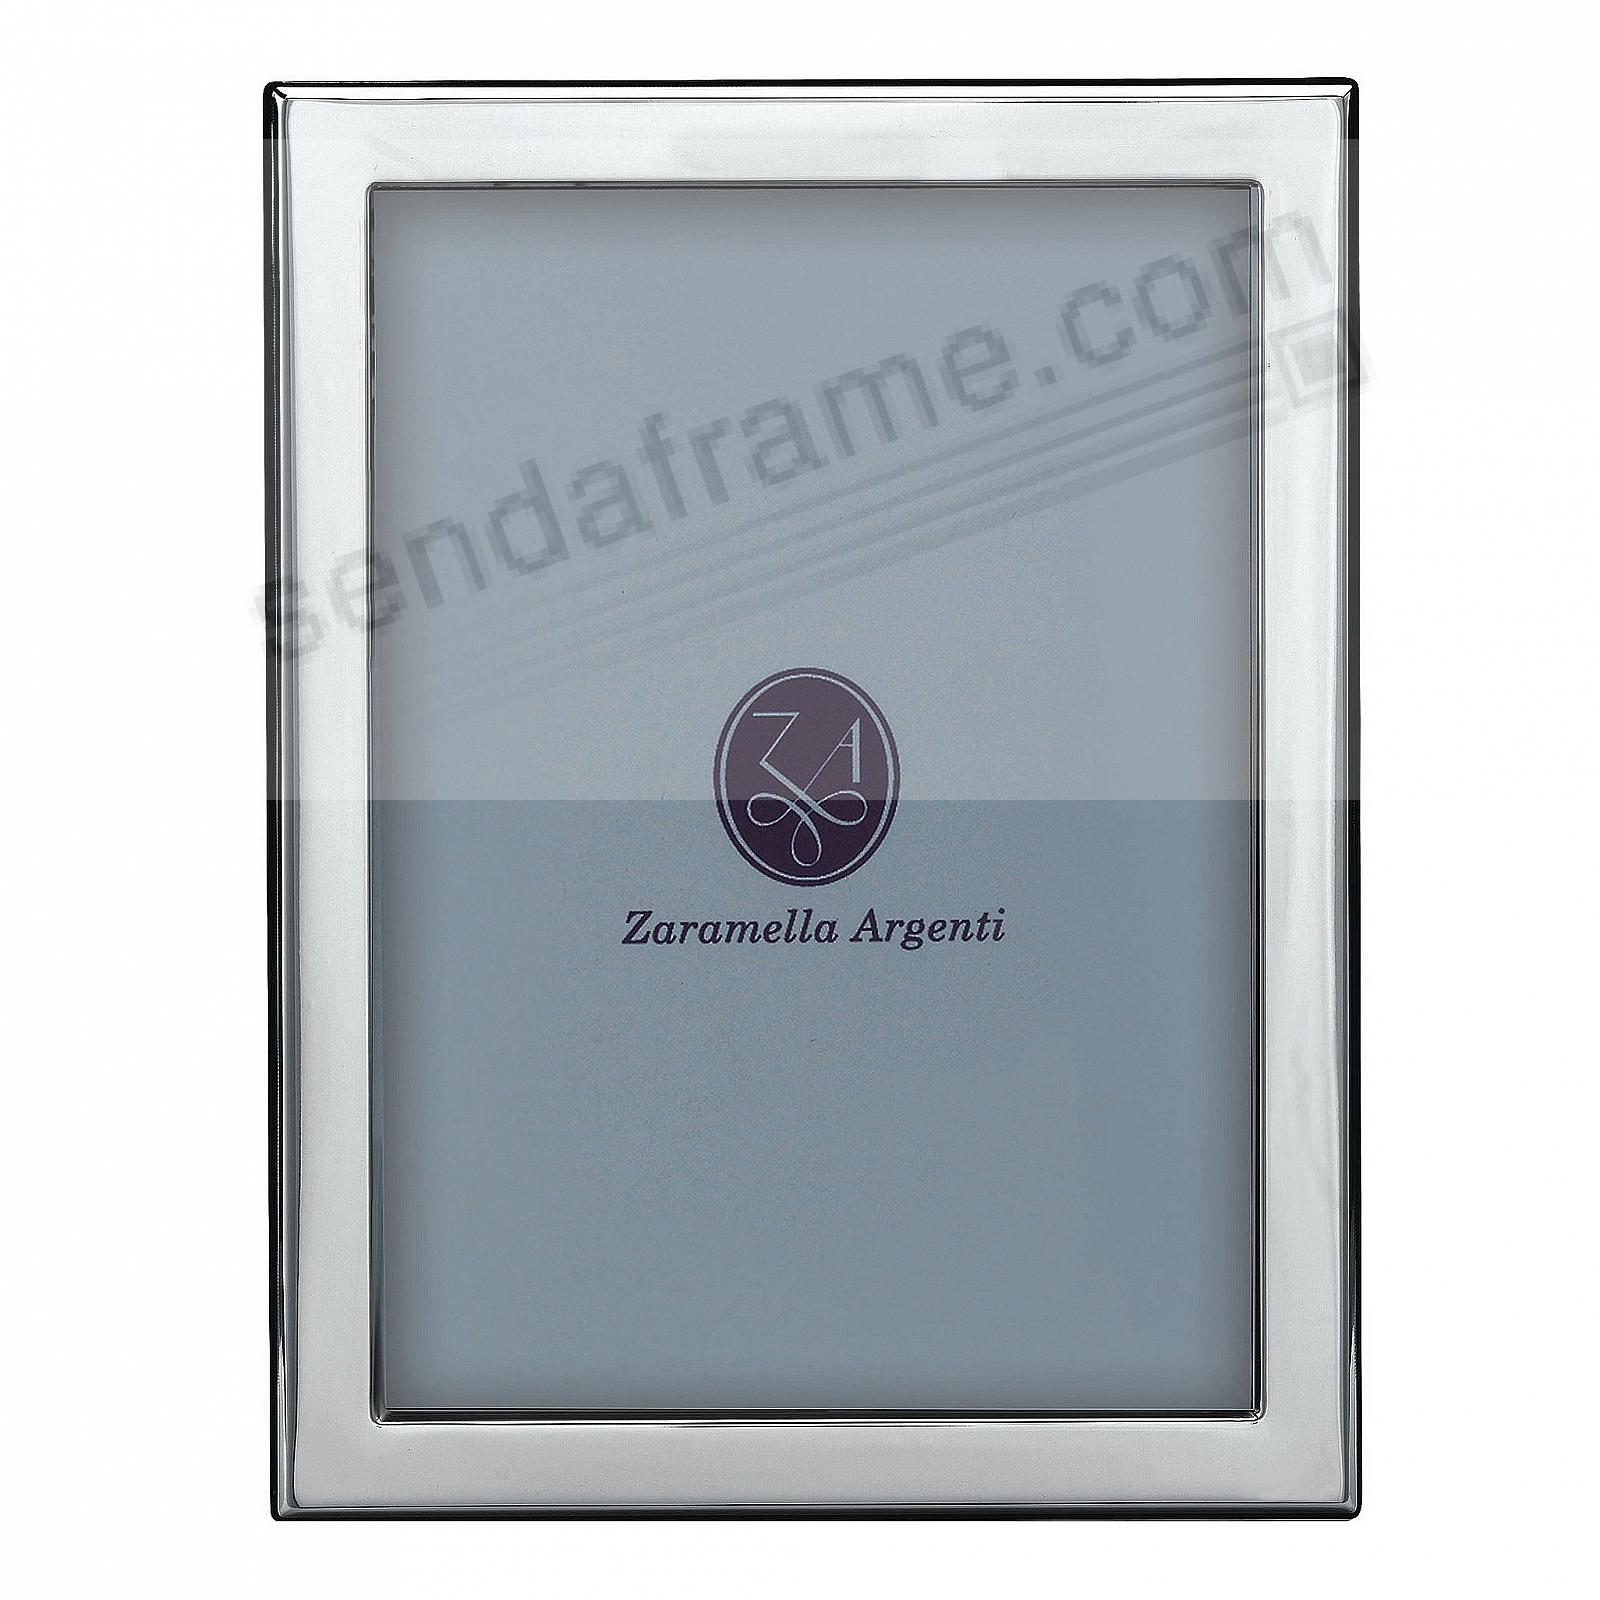 Picture frames photo albums personalized and engraved digital london an engraving favorite in pure italian sterling silver by zaramella argentireg jeuxipadfo Image collections